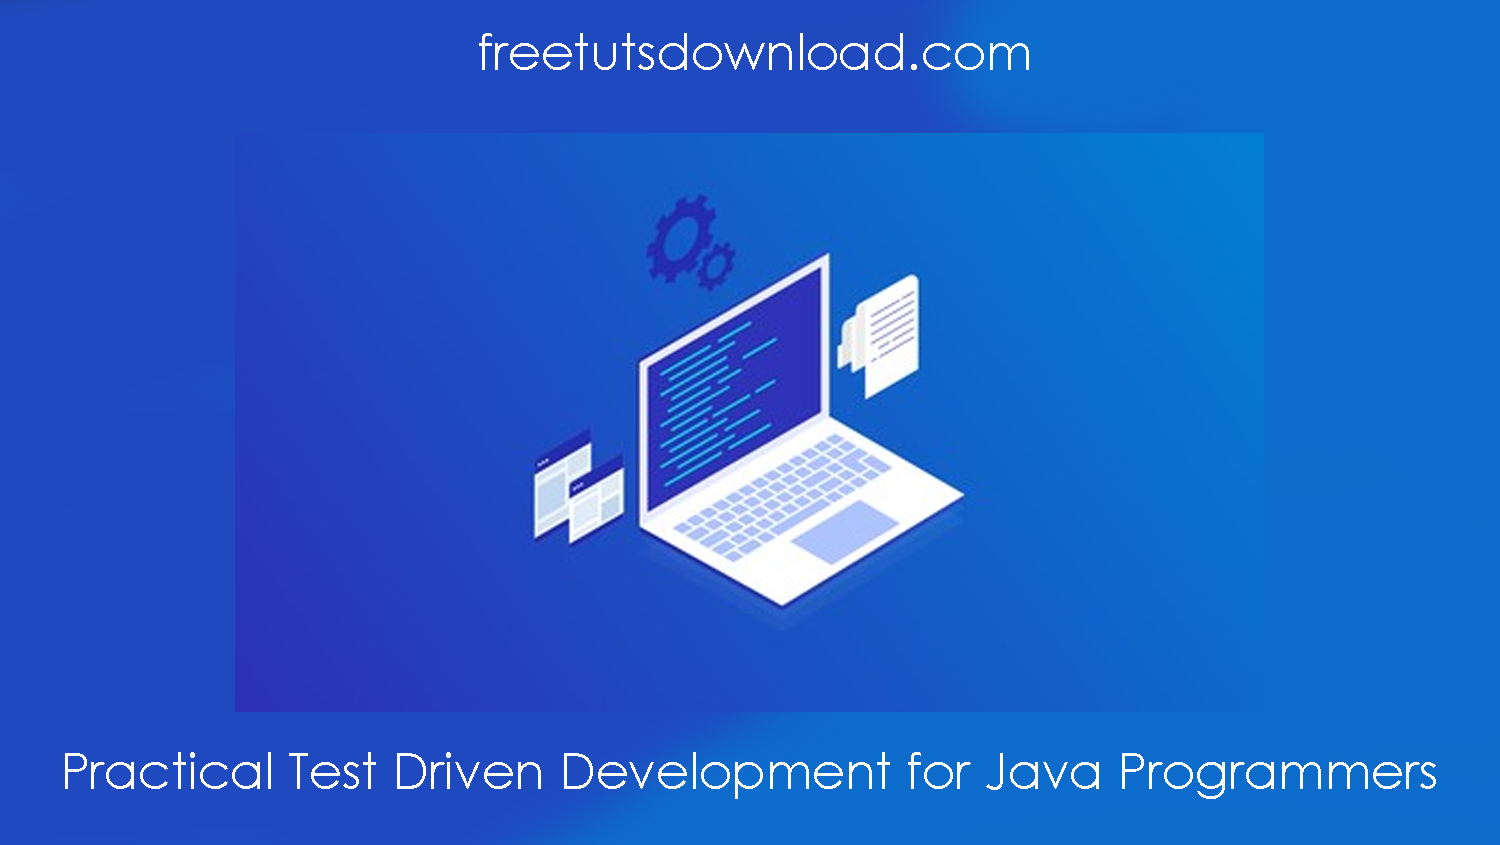 Practical Test Driven Development for Java Programmers